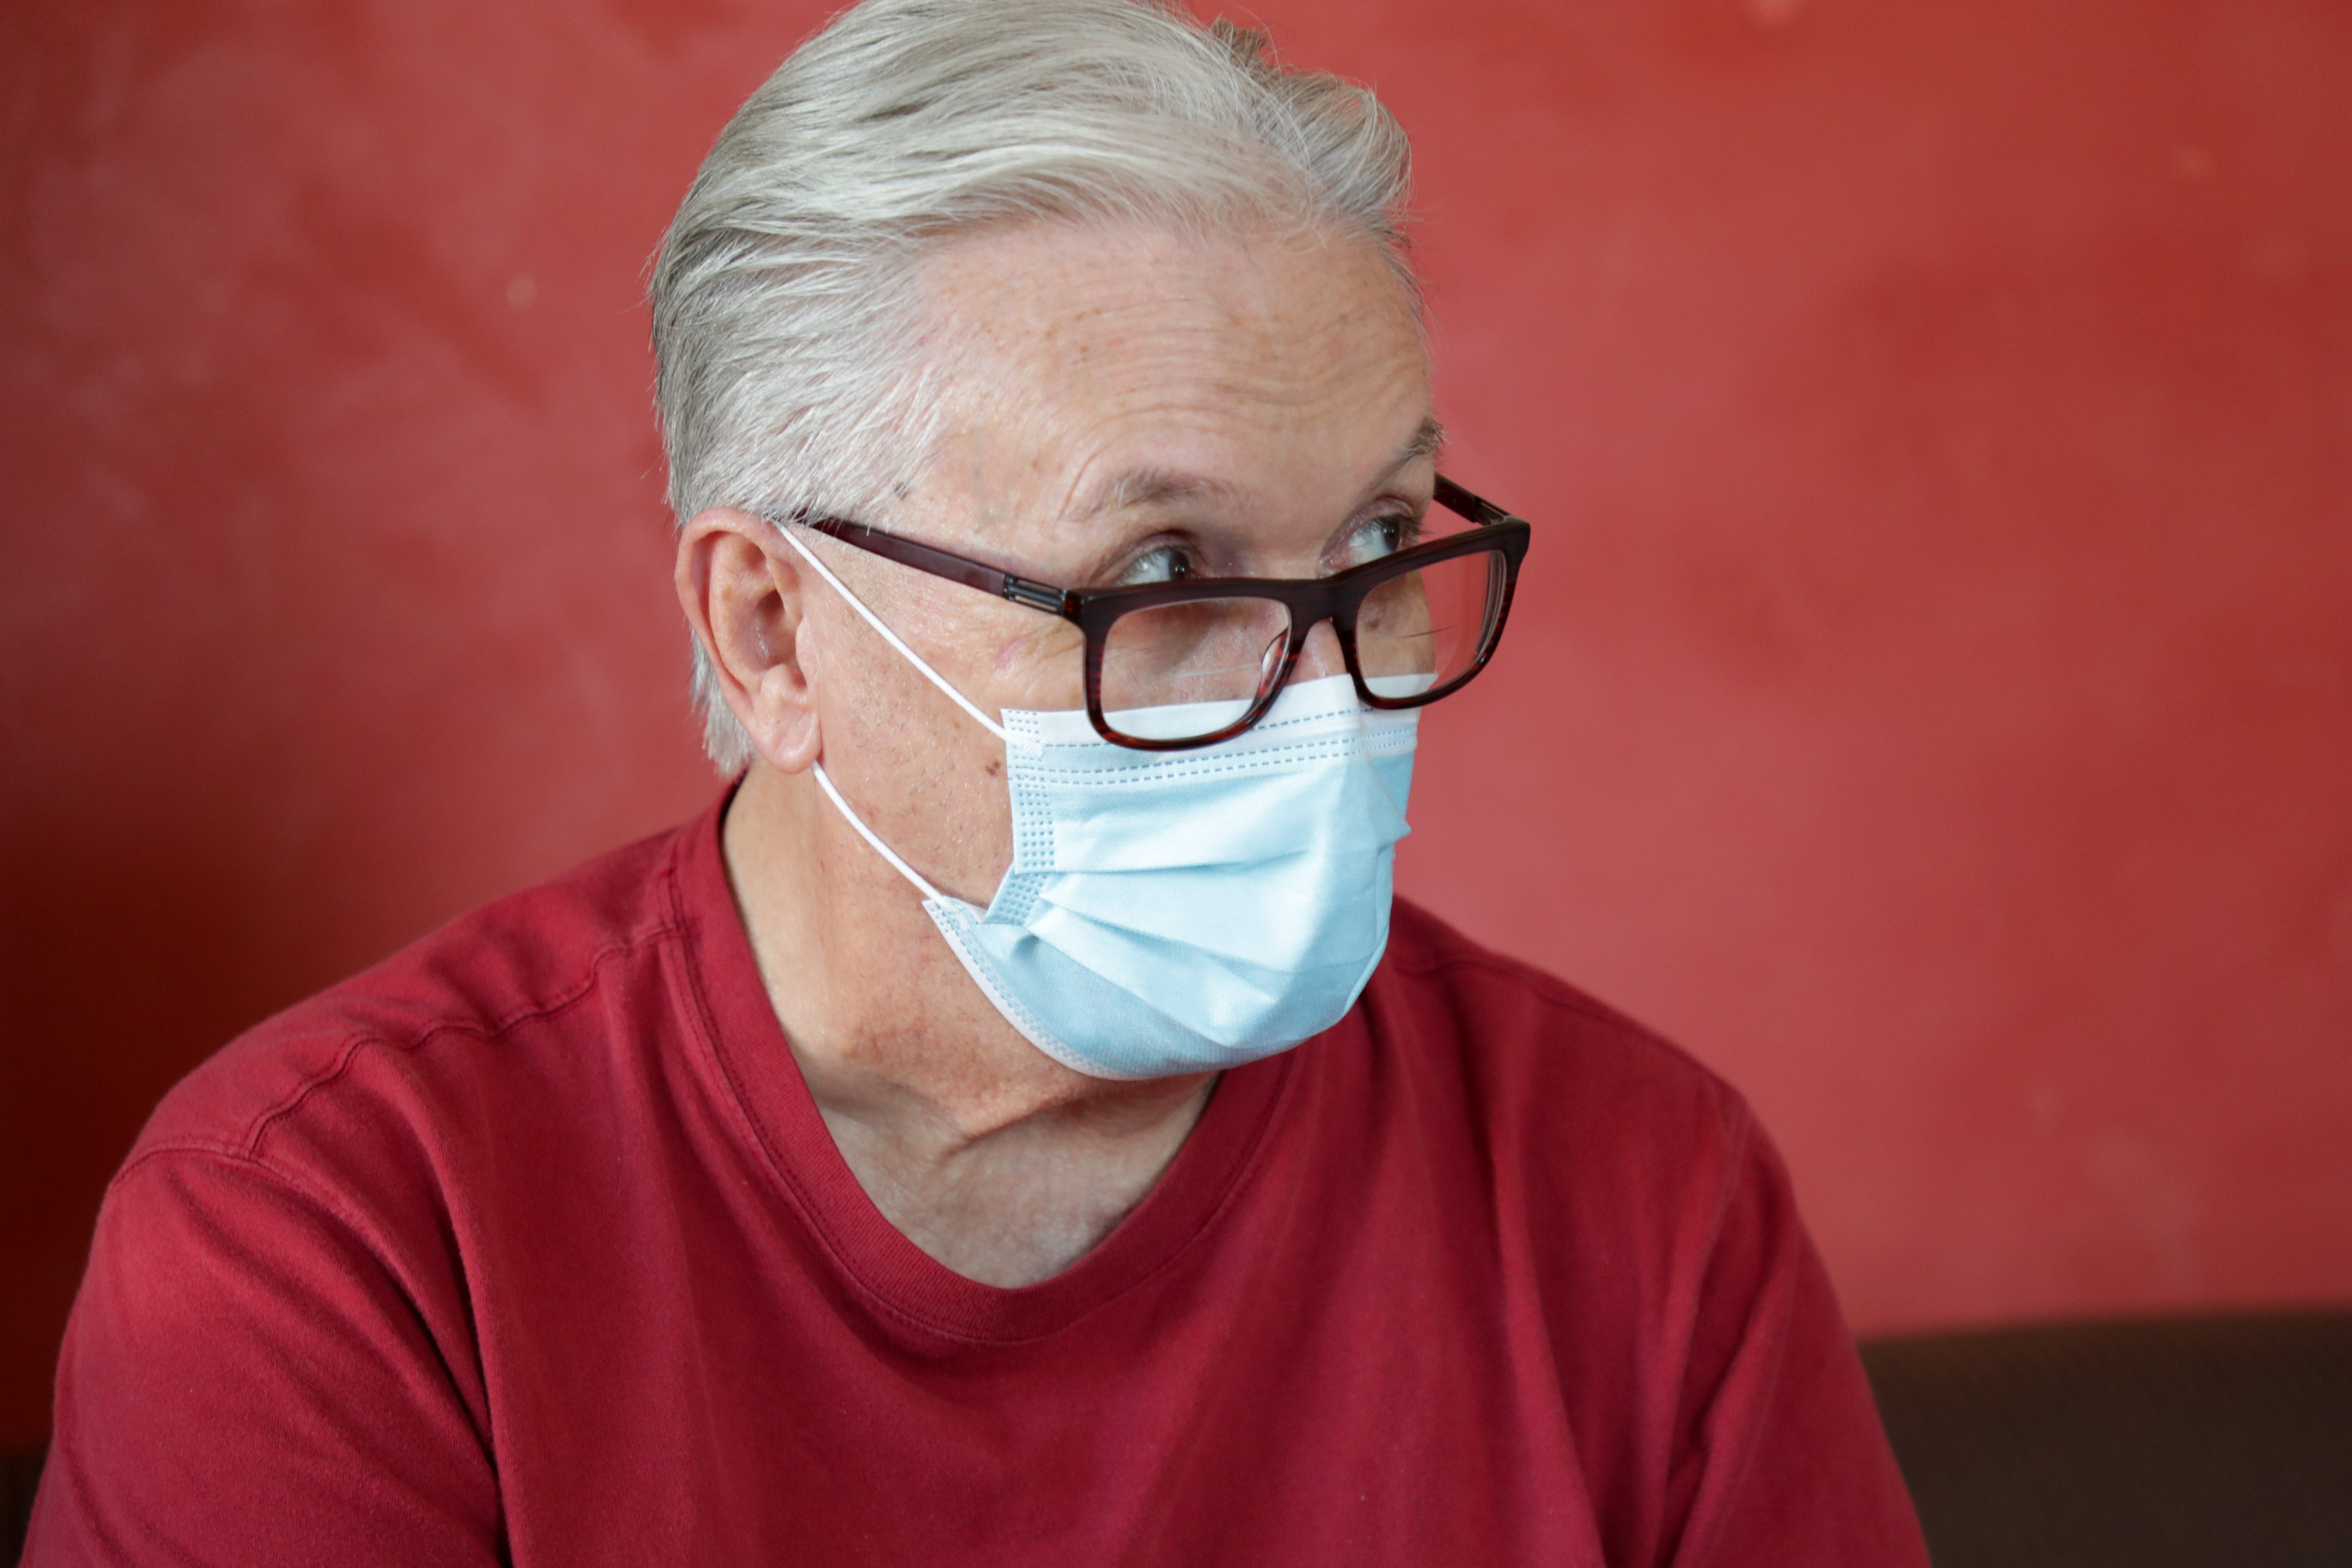 Lee Fournier sits in his hotel room provided by Project Roomkey on Sunday, October 11, 2020, at Rodeway Inn & Suites in Indio, Calif. Project Roomkey is an effort by the state to house individuals experiencing homelessness during the COVID-19 pandemic.